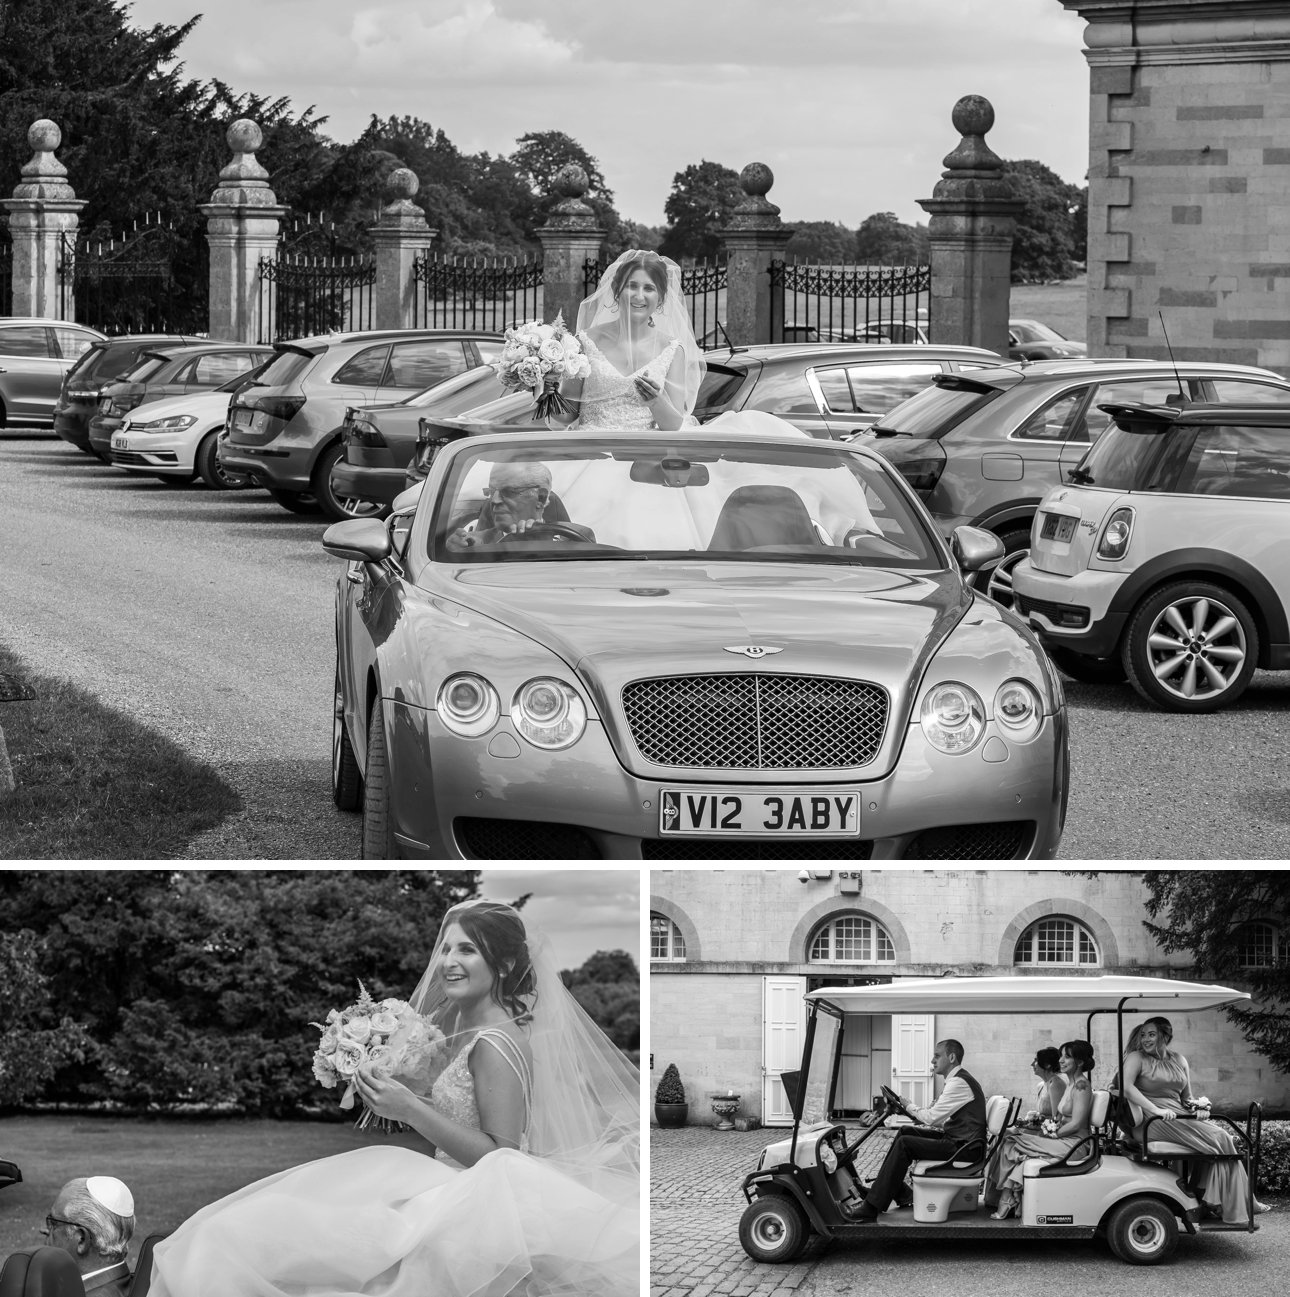 The bride rides in the rear of her father's Bentley at Stapleford Park wedding venue on the way to the chuppah part of her wedding ceremony.